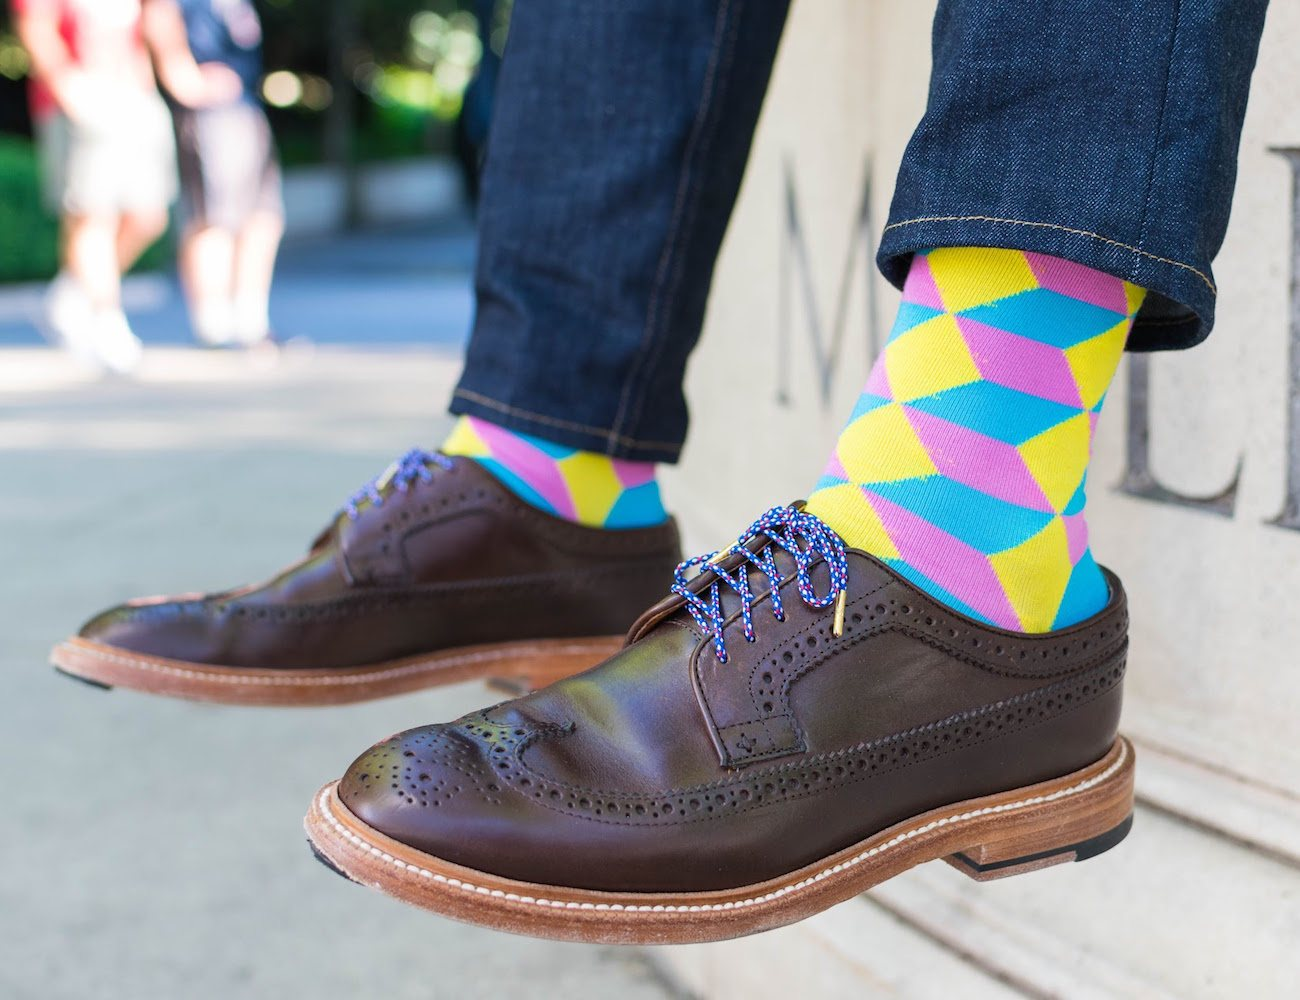 Flyte Socks – Ridiculously Bright, Bold & Comfortable Socks